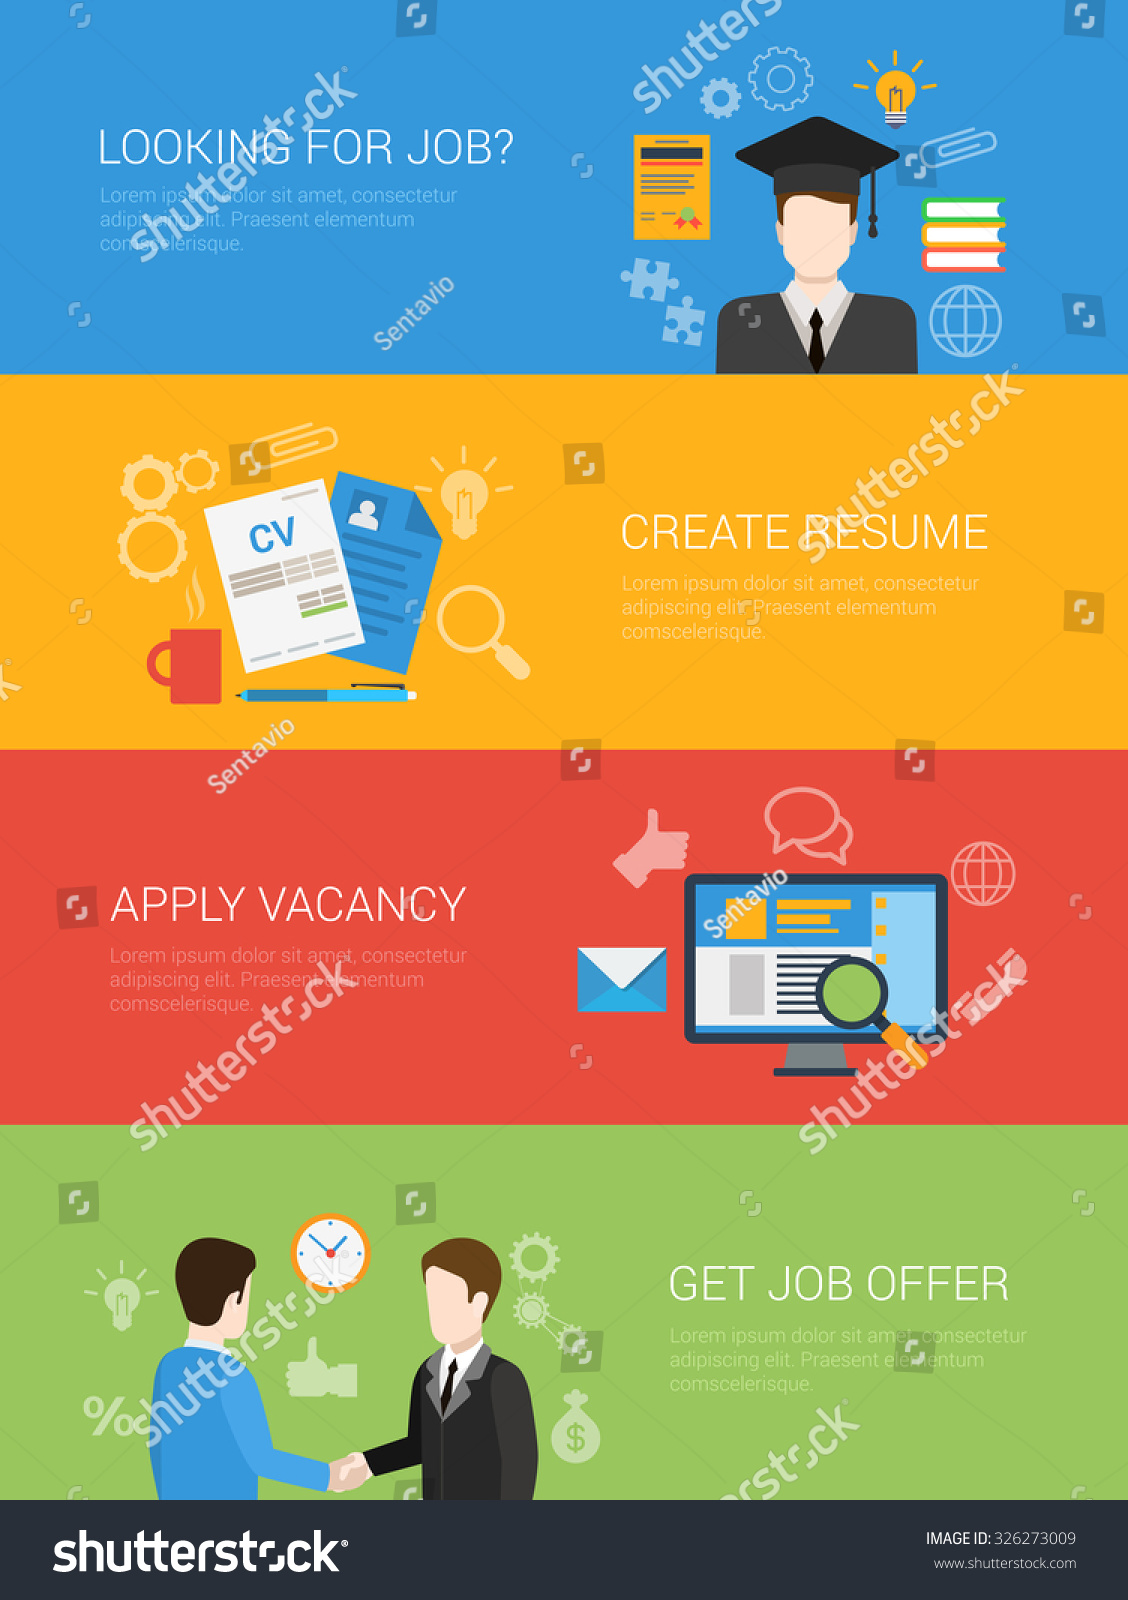 flat style looking job offer create stock vector  flat style looking for job offer create resume apply vacancy website banner infographic icon set